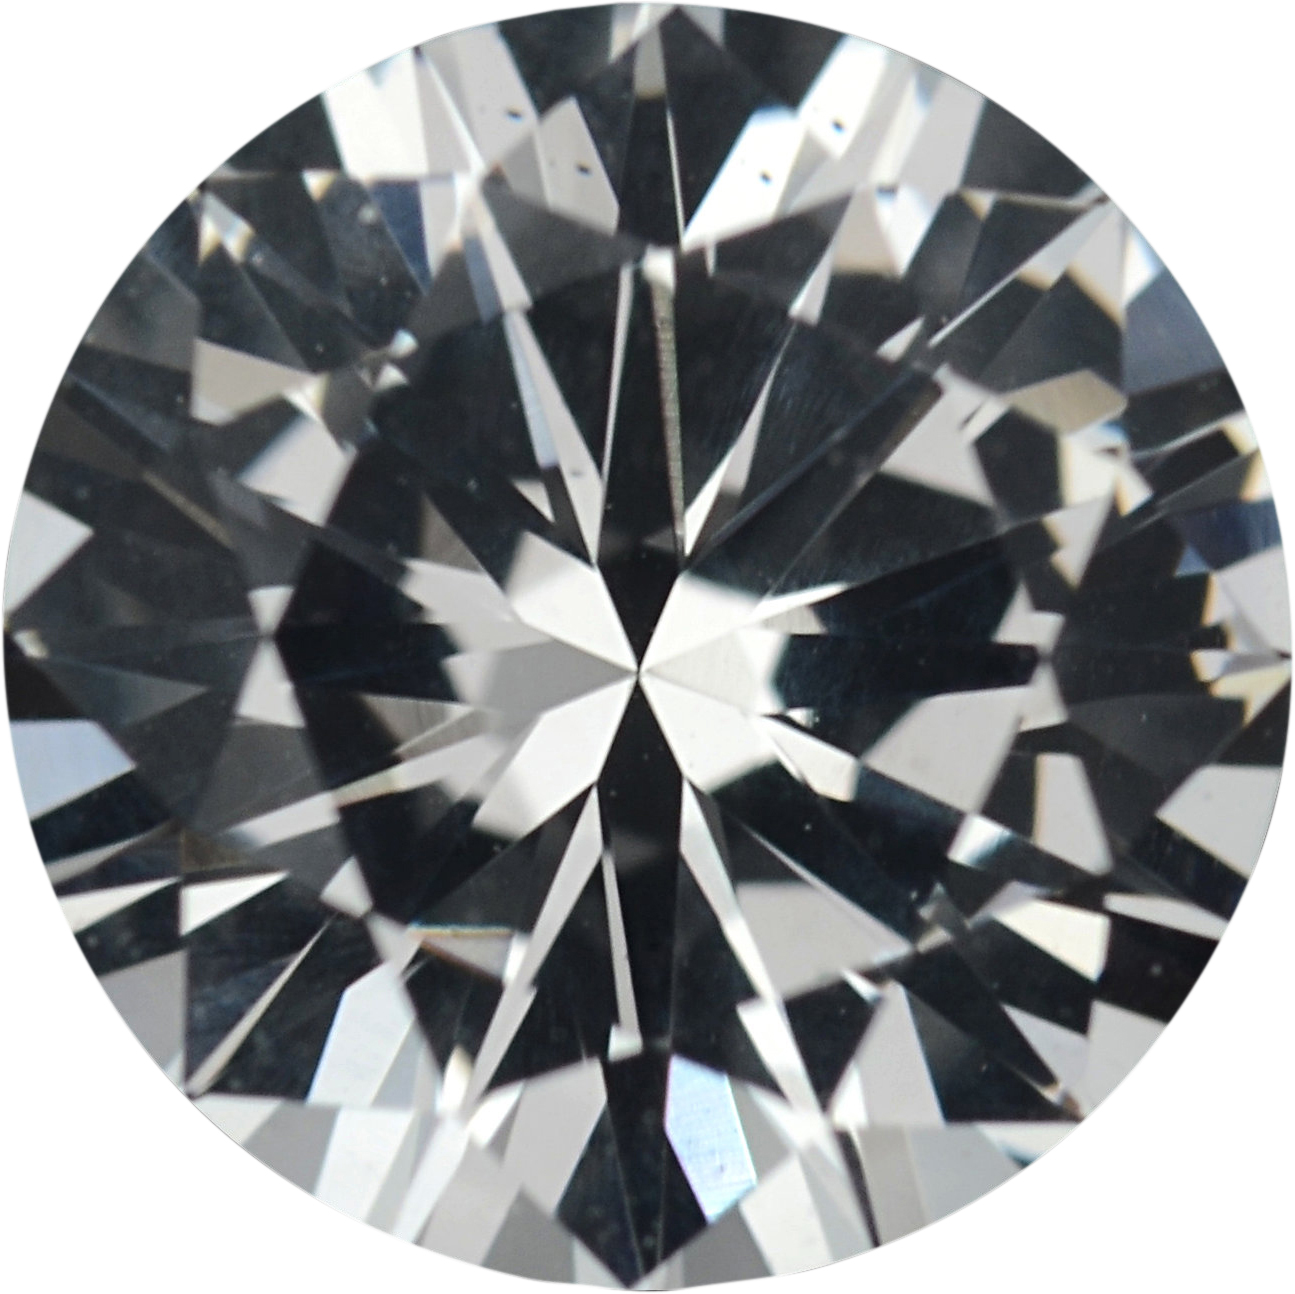 Good Looking Round Cut Loose White Sapphire Gem, Near Colorless, 6.79 mm, 1.33 carats